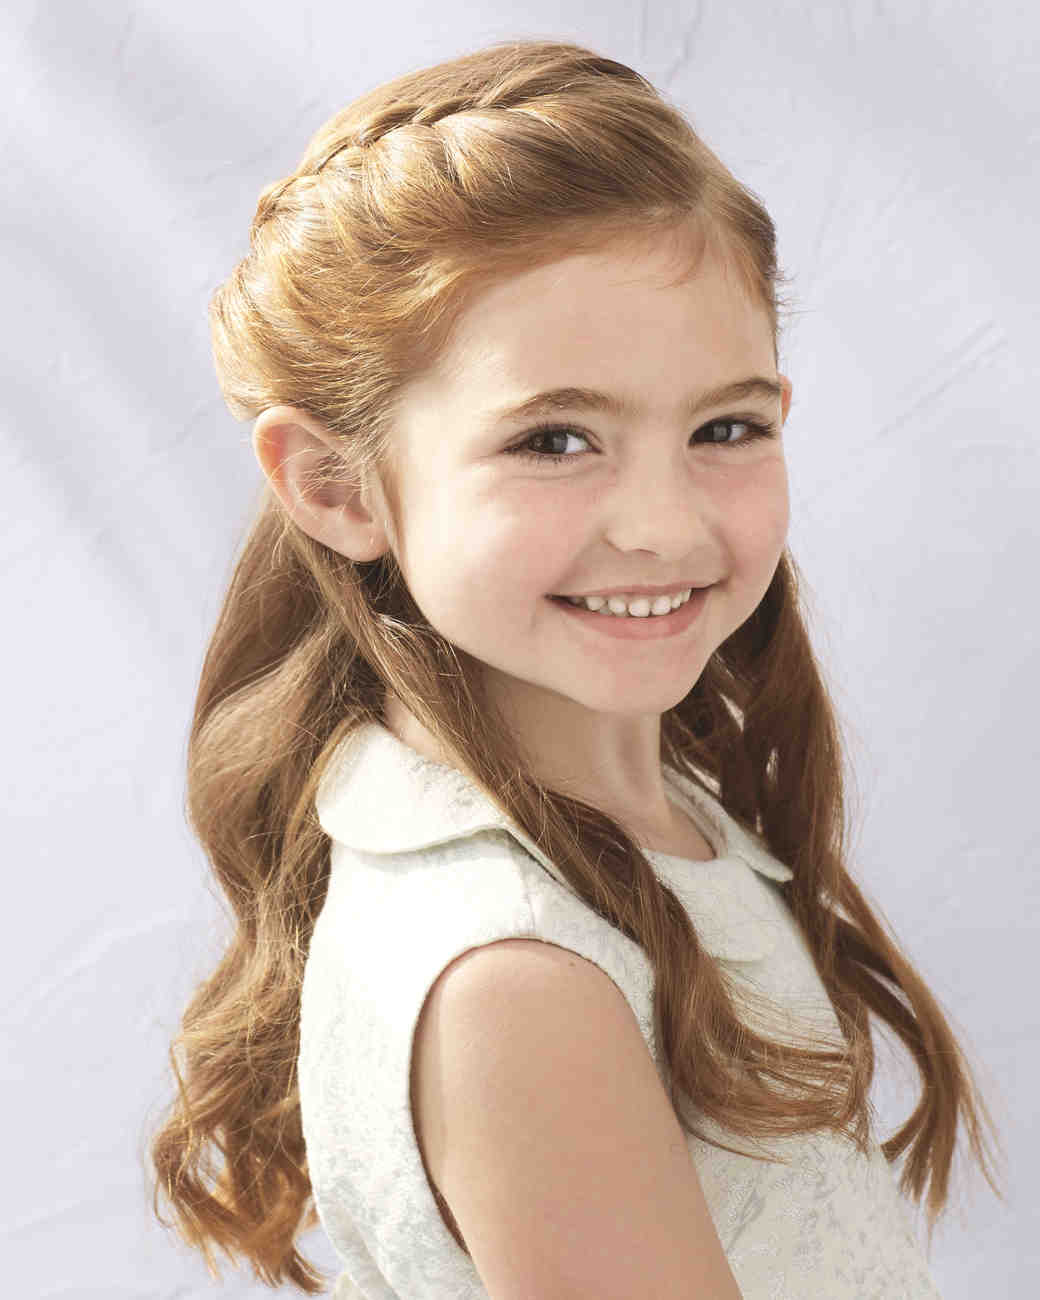 flower girl hairstyles that are cute and comfy martha stewart weddings. Black Bedroom Furniture Sets. Home Design Ideas